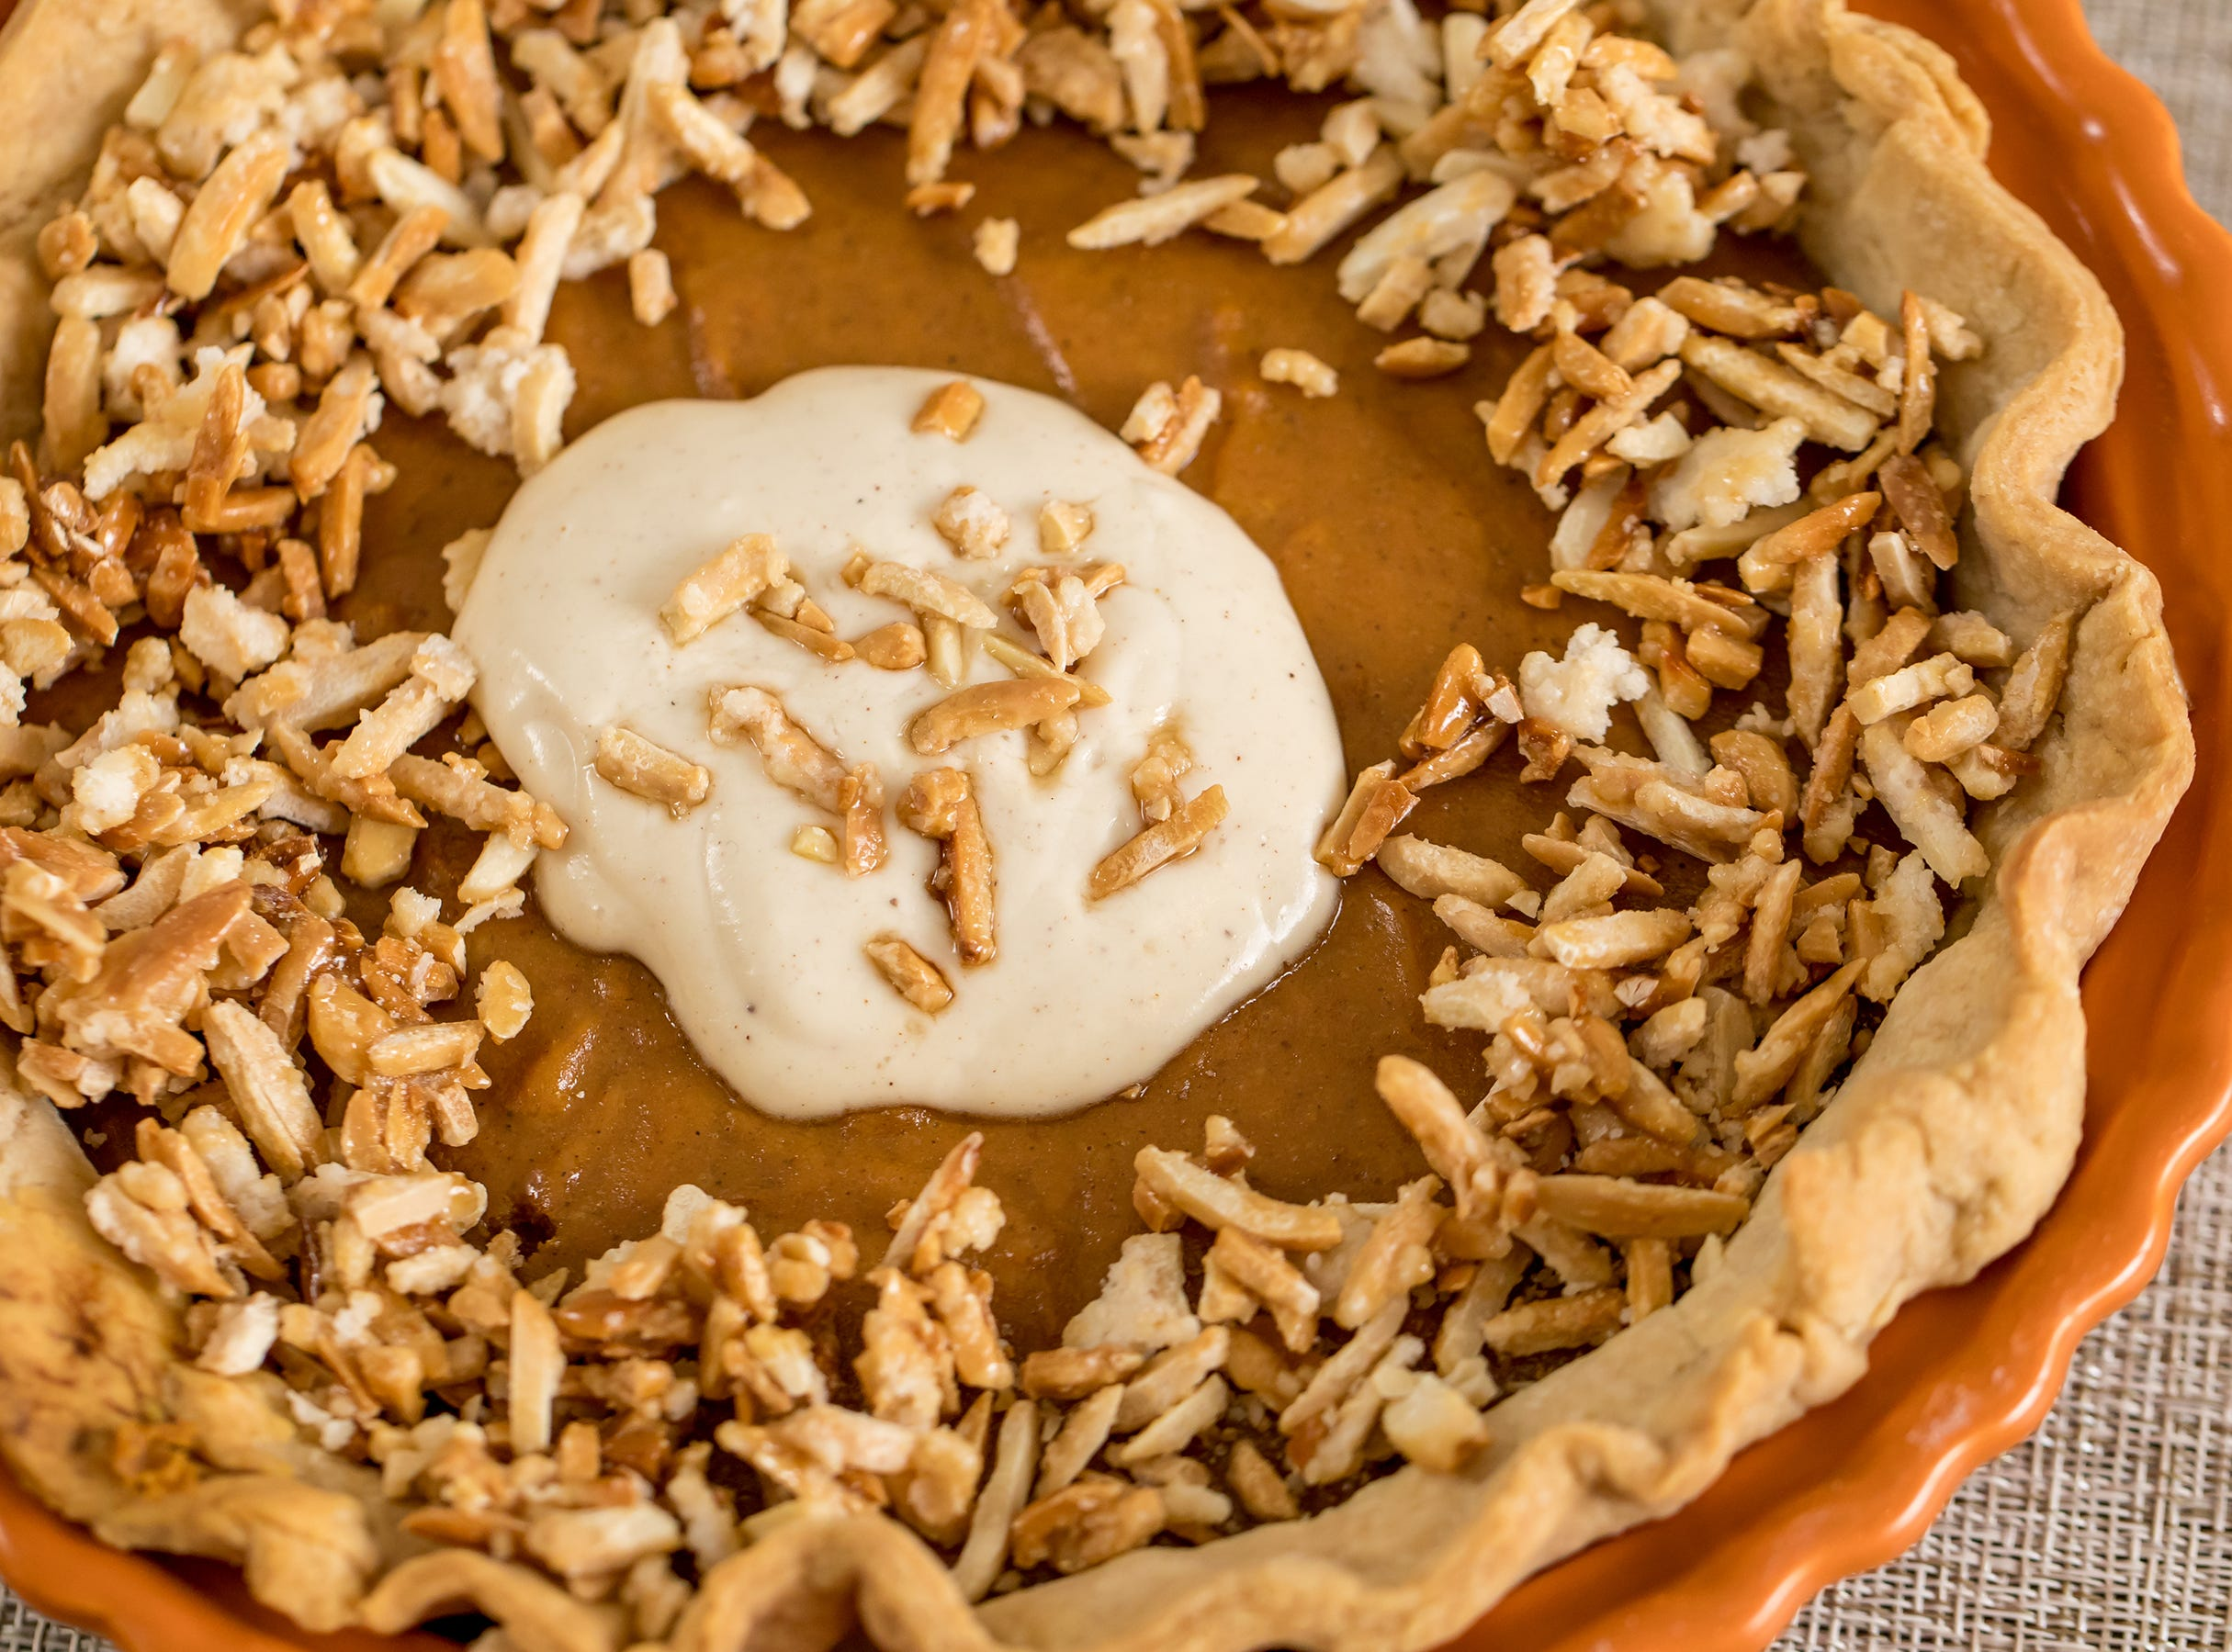 The filling in this spiced pumpkin pie recipe has a wonderful blend of spices (pumpkin spice plus a little extra nutmeg) and sugar (brown sugar and sweetened condensed milk) — enough to give it lots of wonderful flavor.